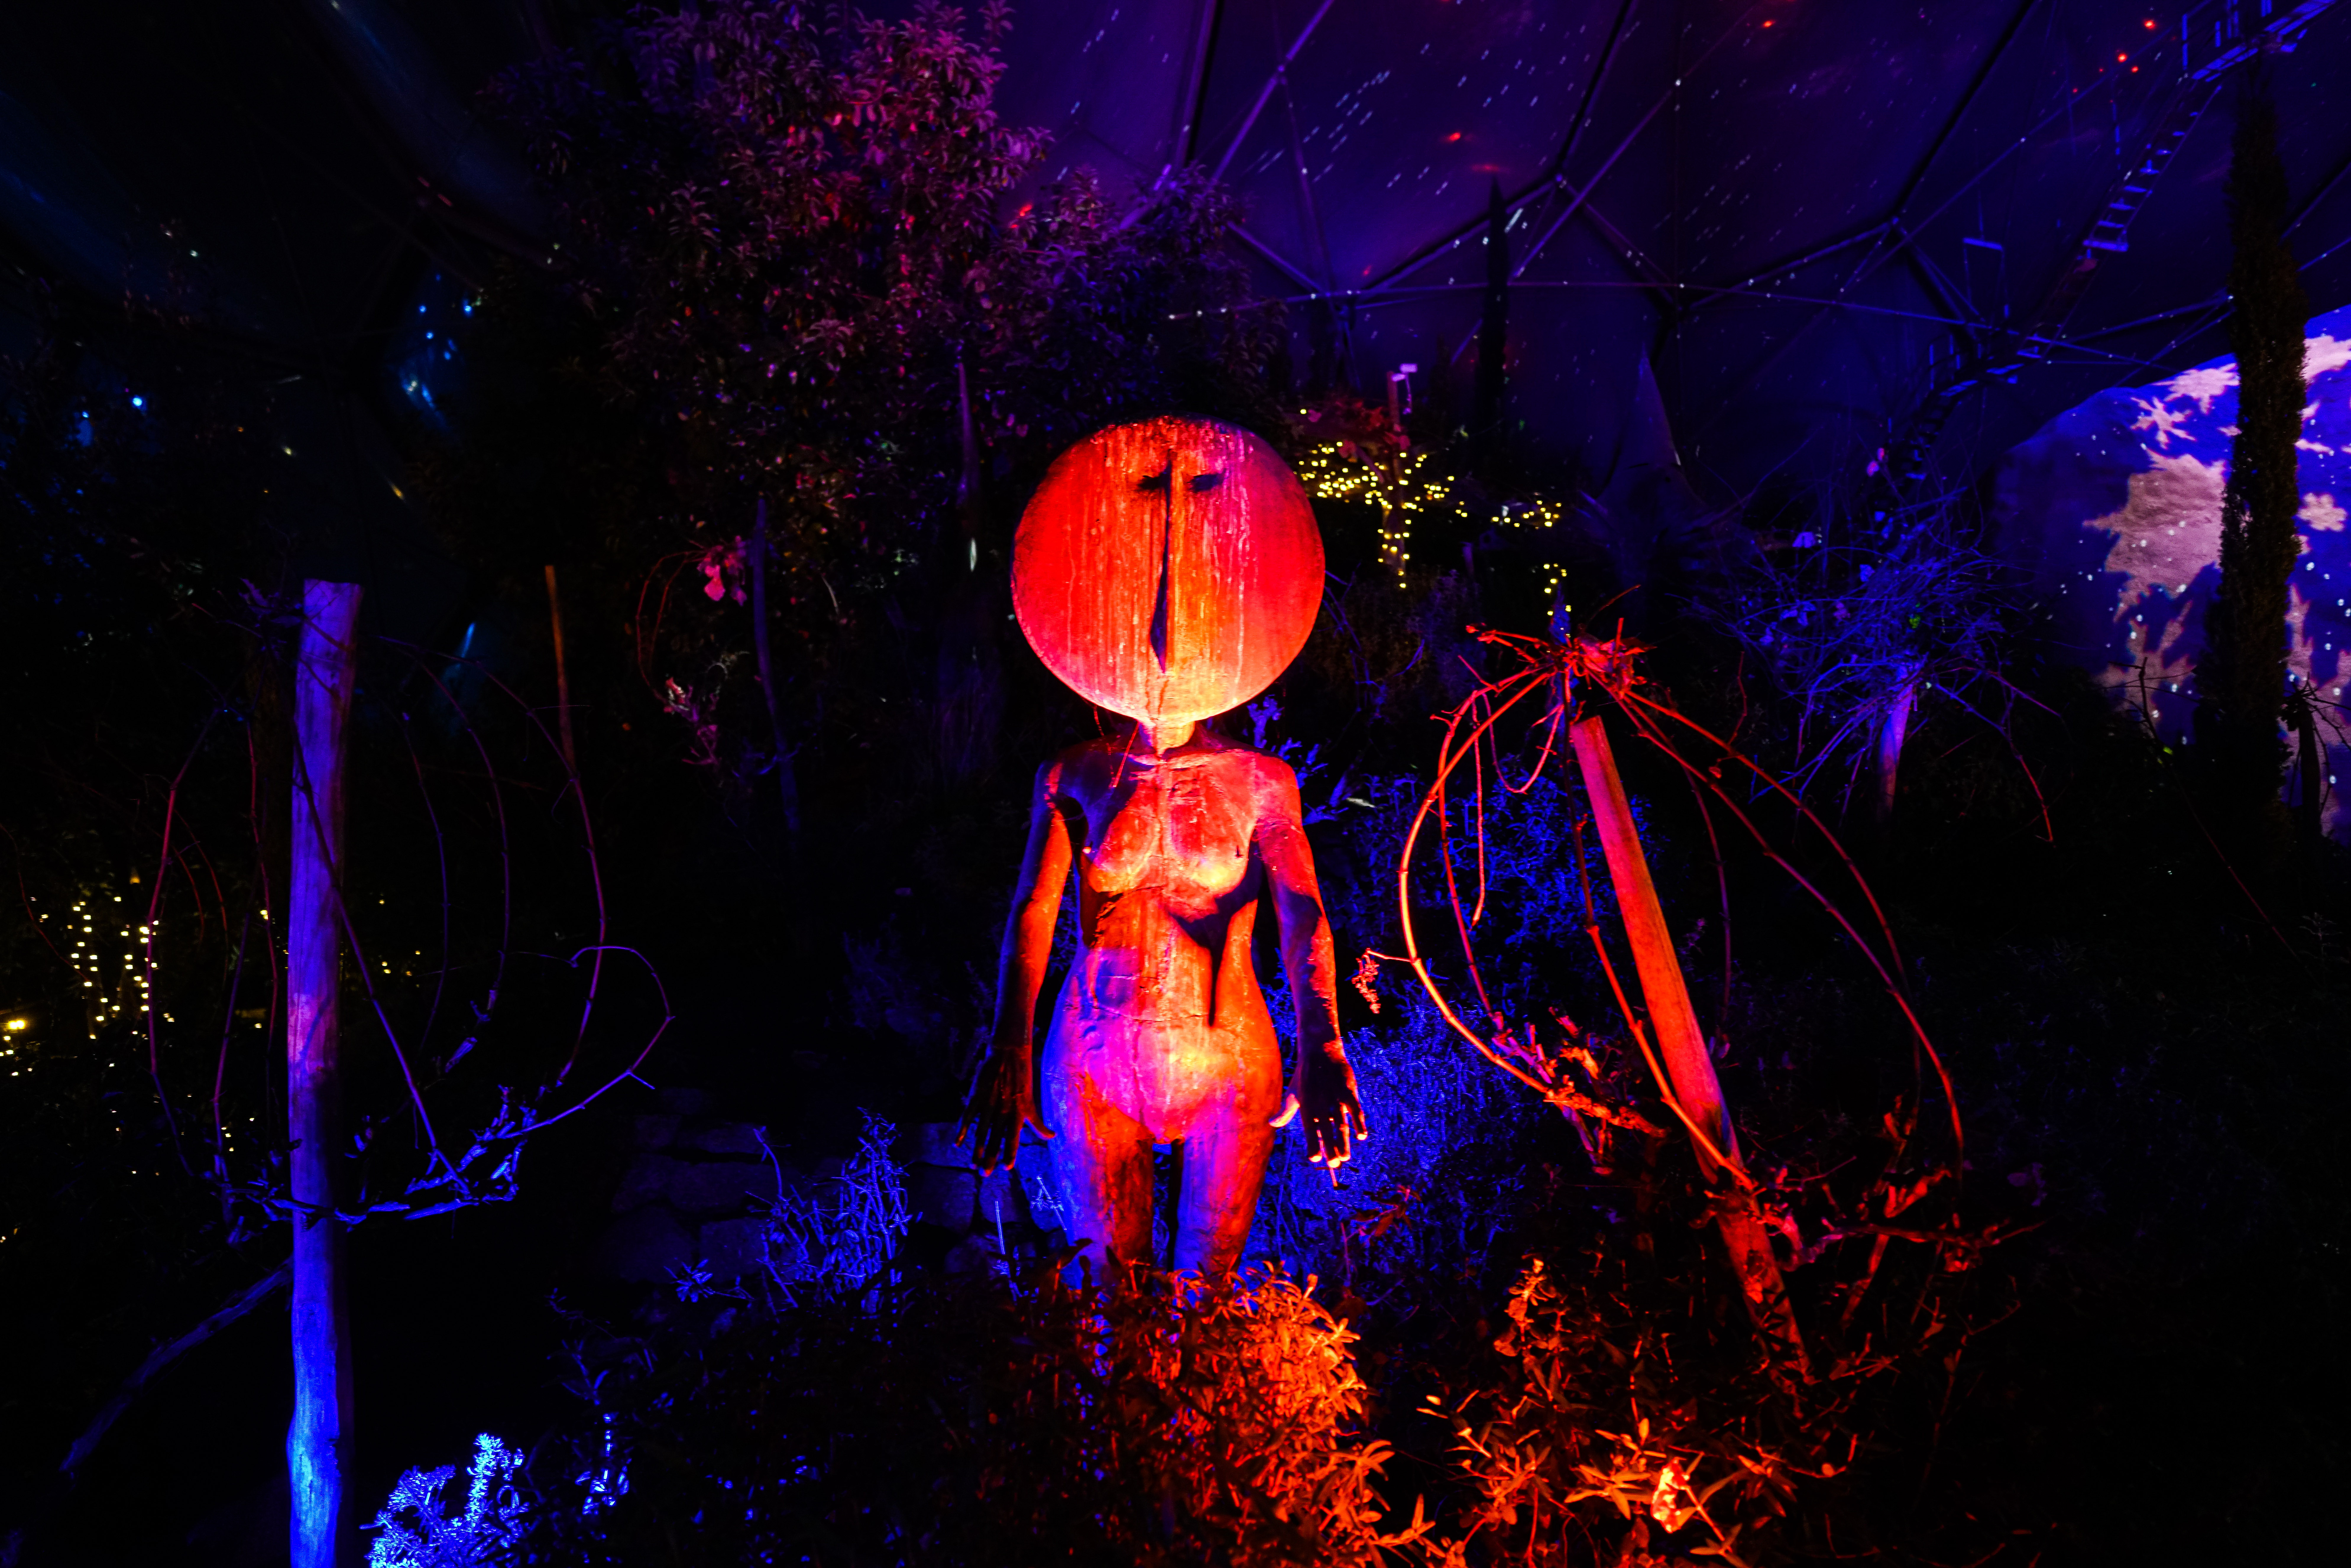 ST AUSTELL, ENGLAND - DECEMBER 03: A view of a display amongst the Christmas lights installation in the Mediterranean biome at the Eden Project on December 3, 2020 in St Austell, England. (Photo by Hugh Hastings/Getty Images)